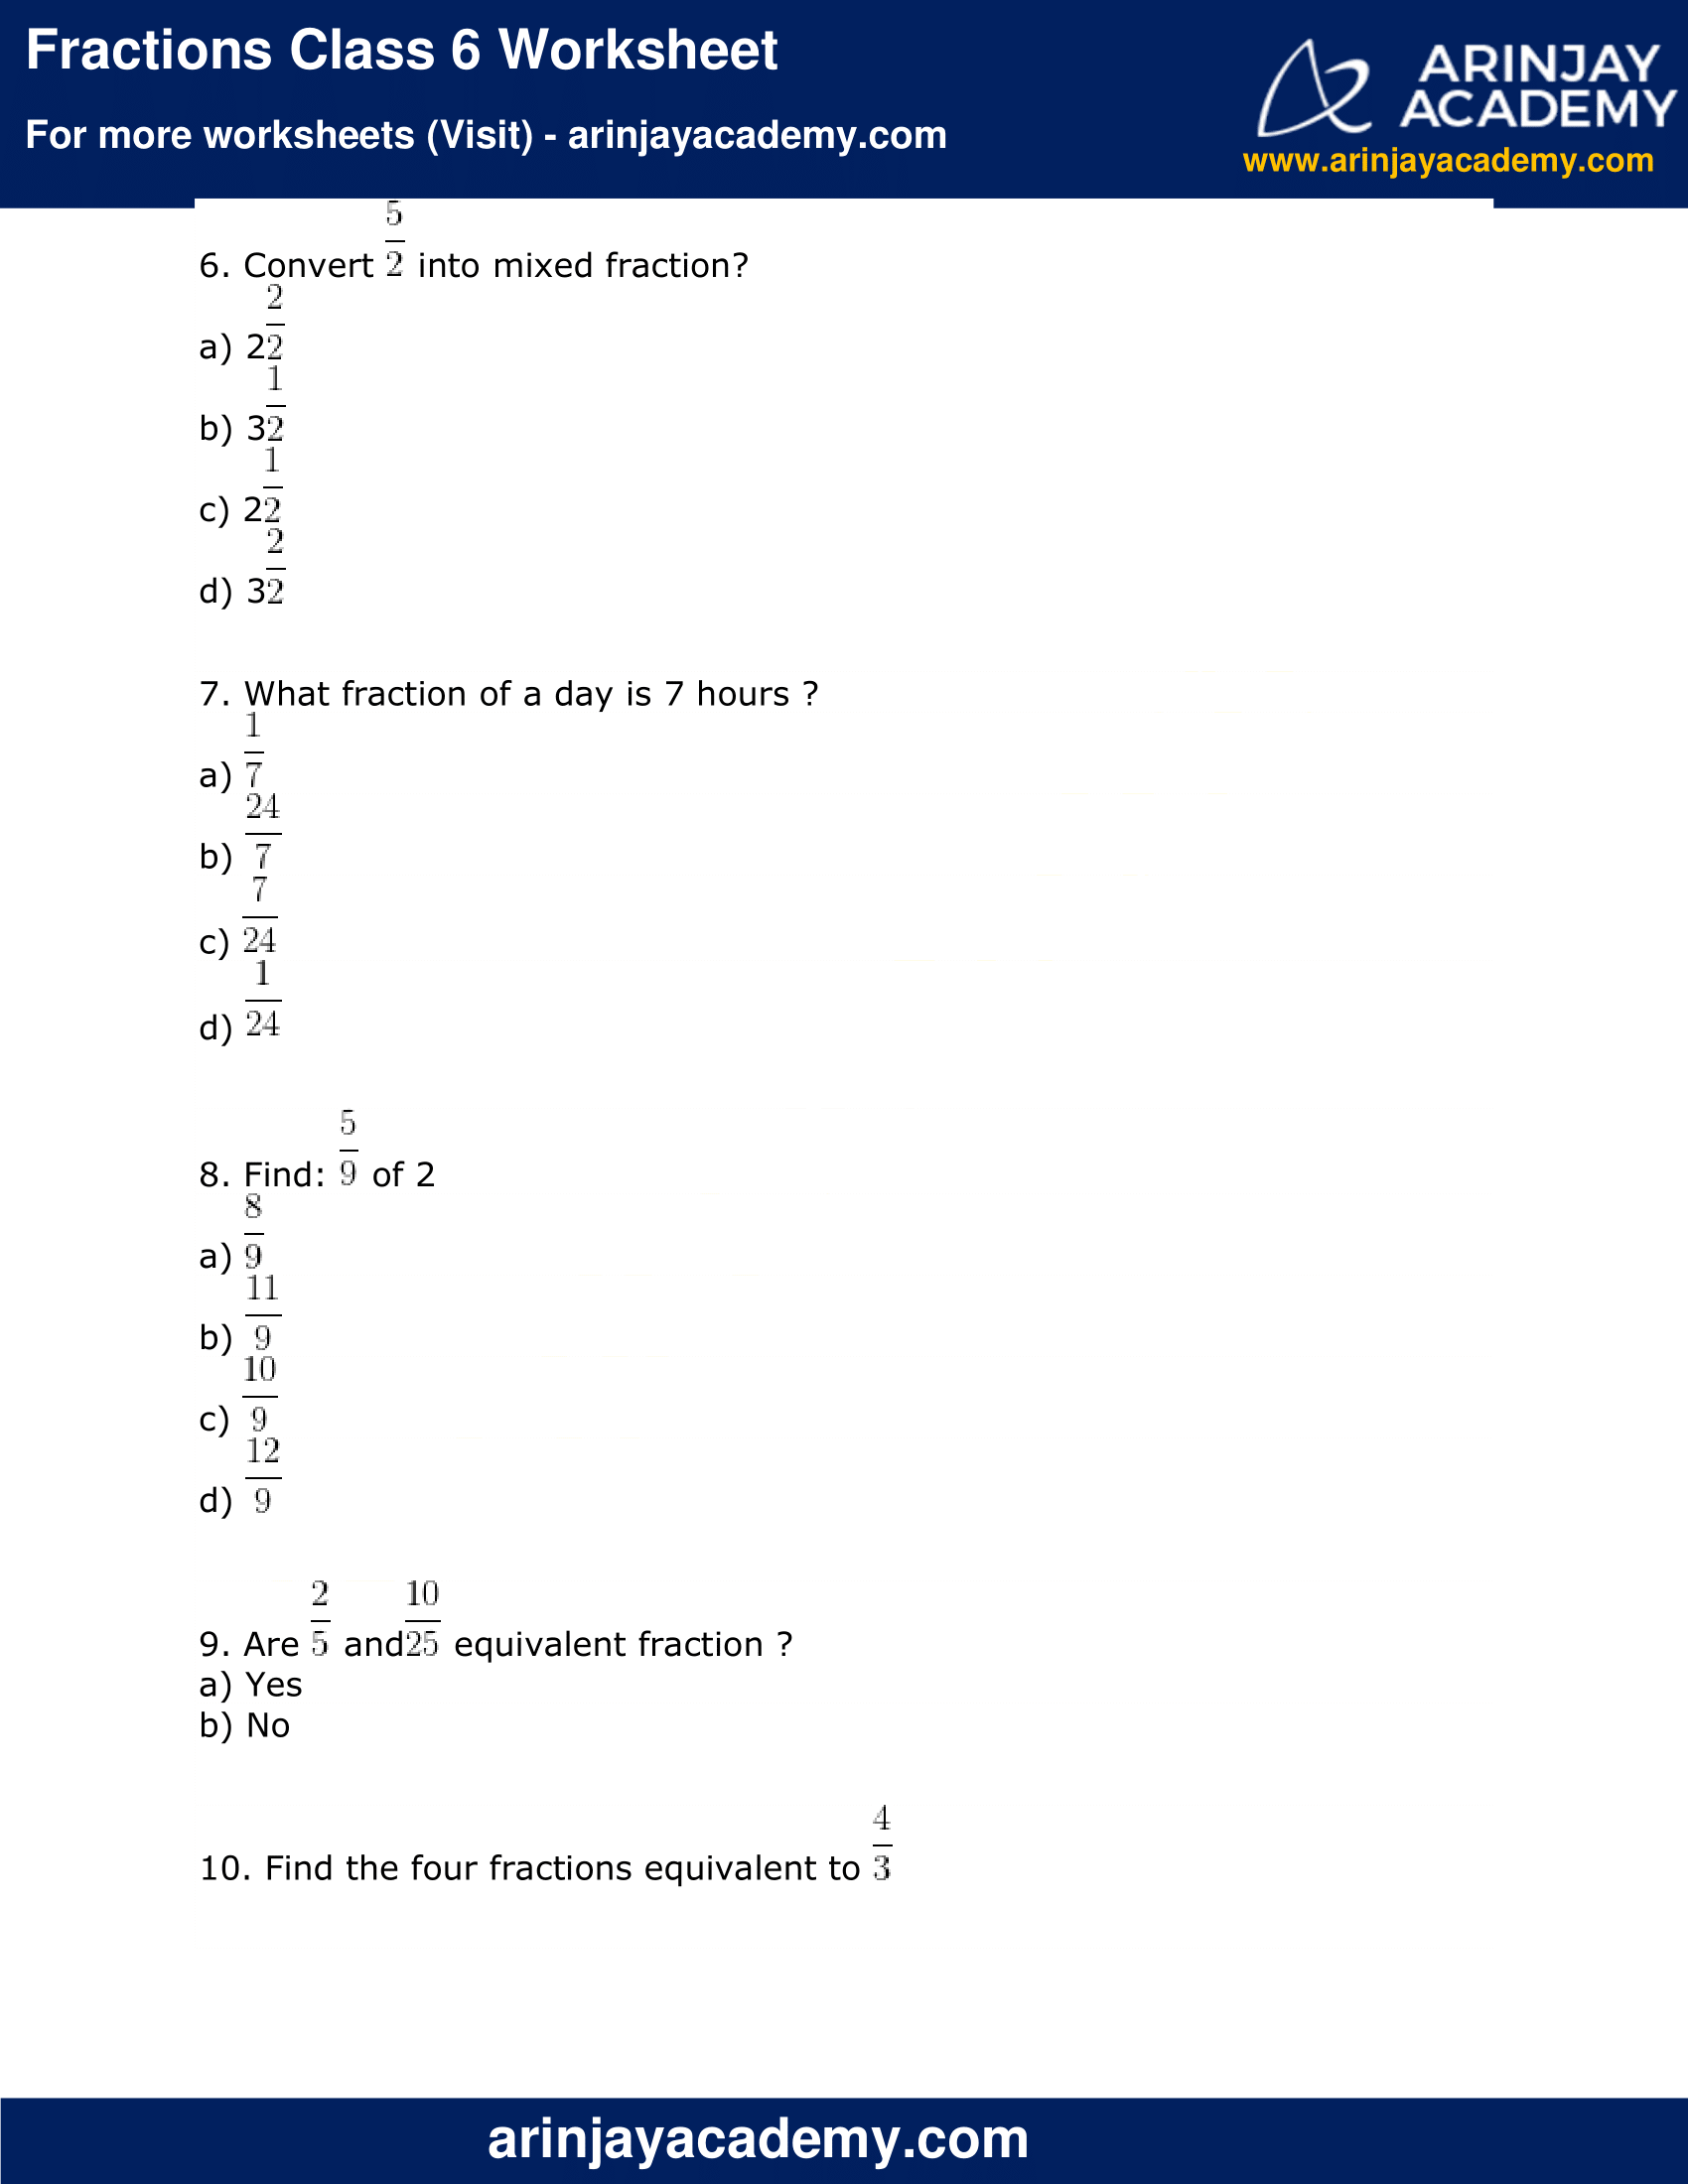 Fractions Class 6 Worksheet image 2